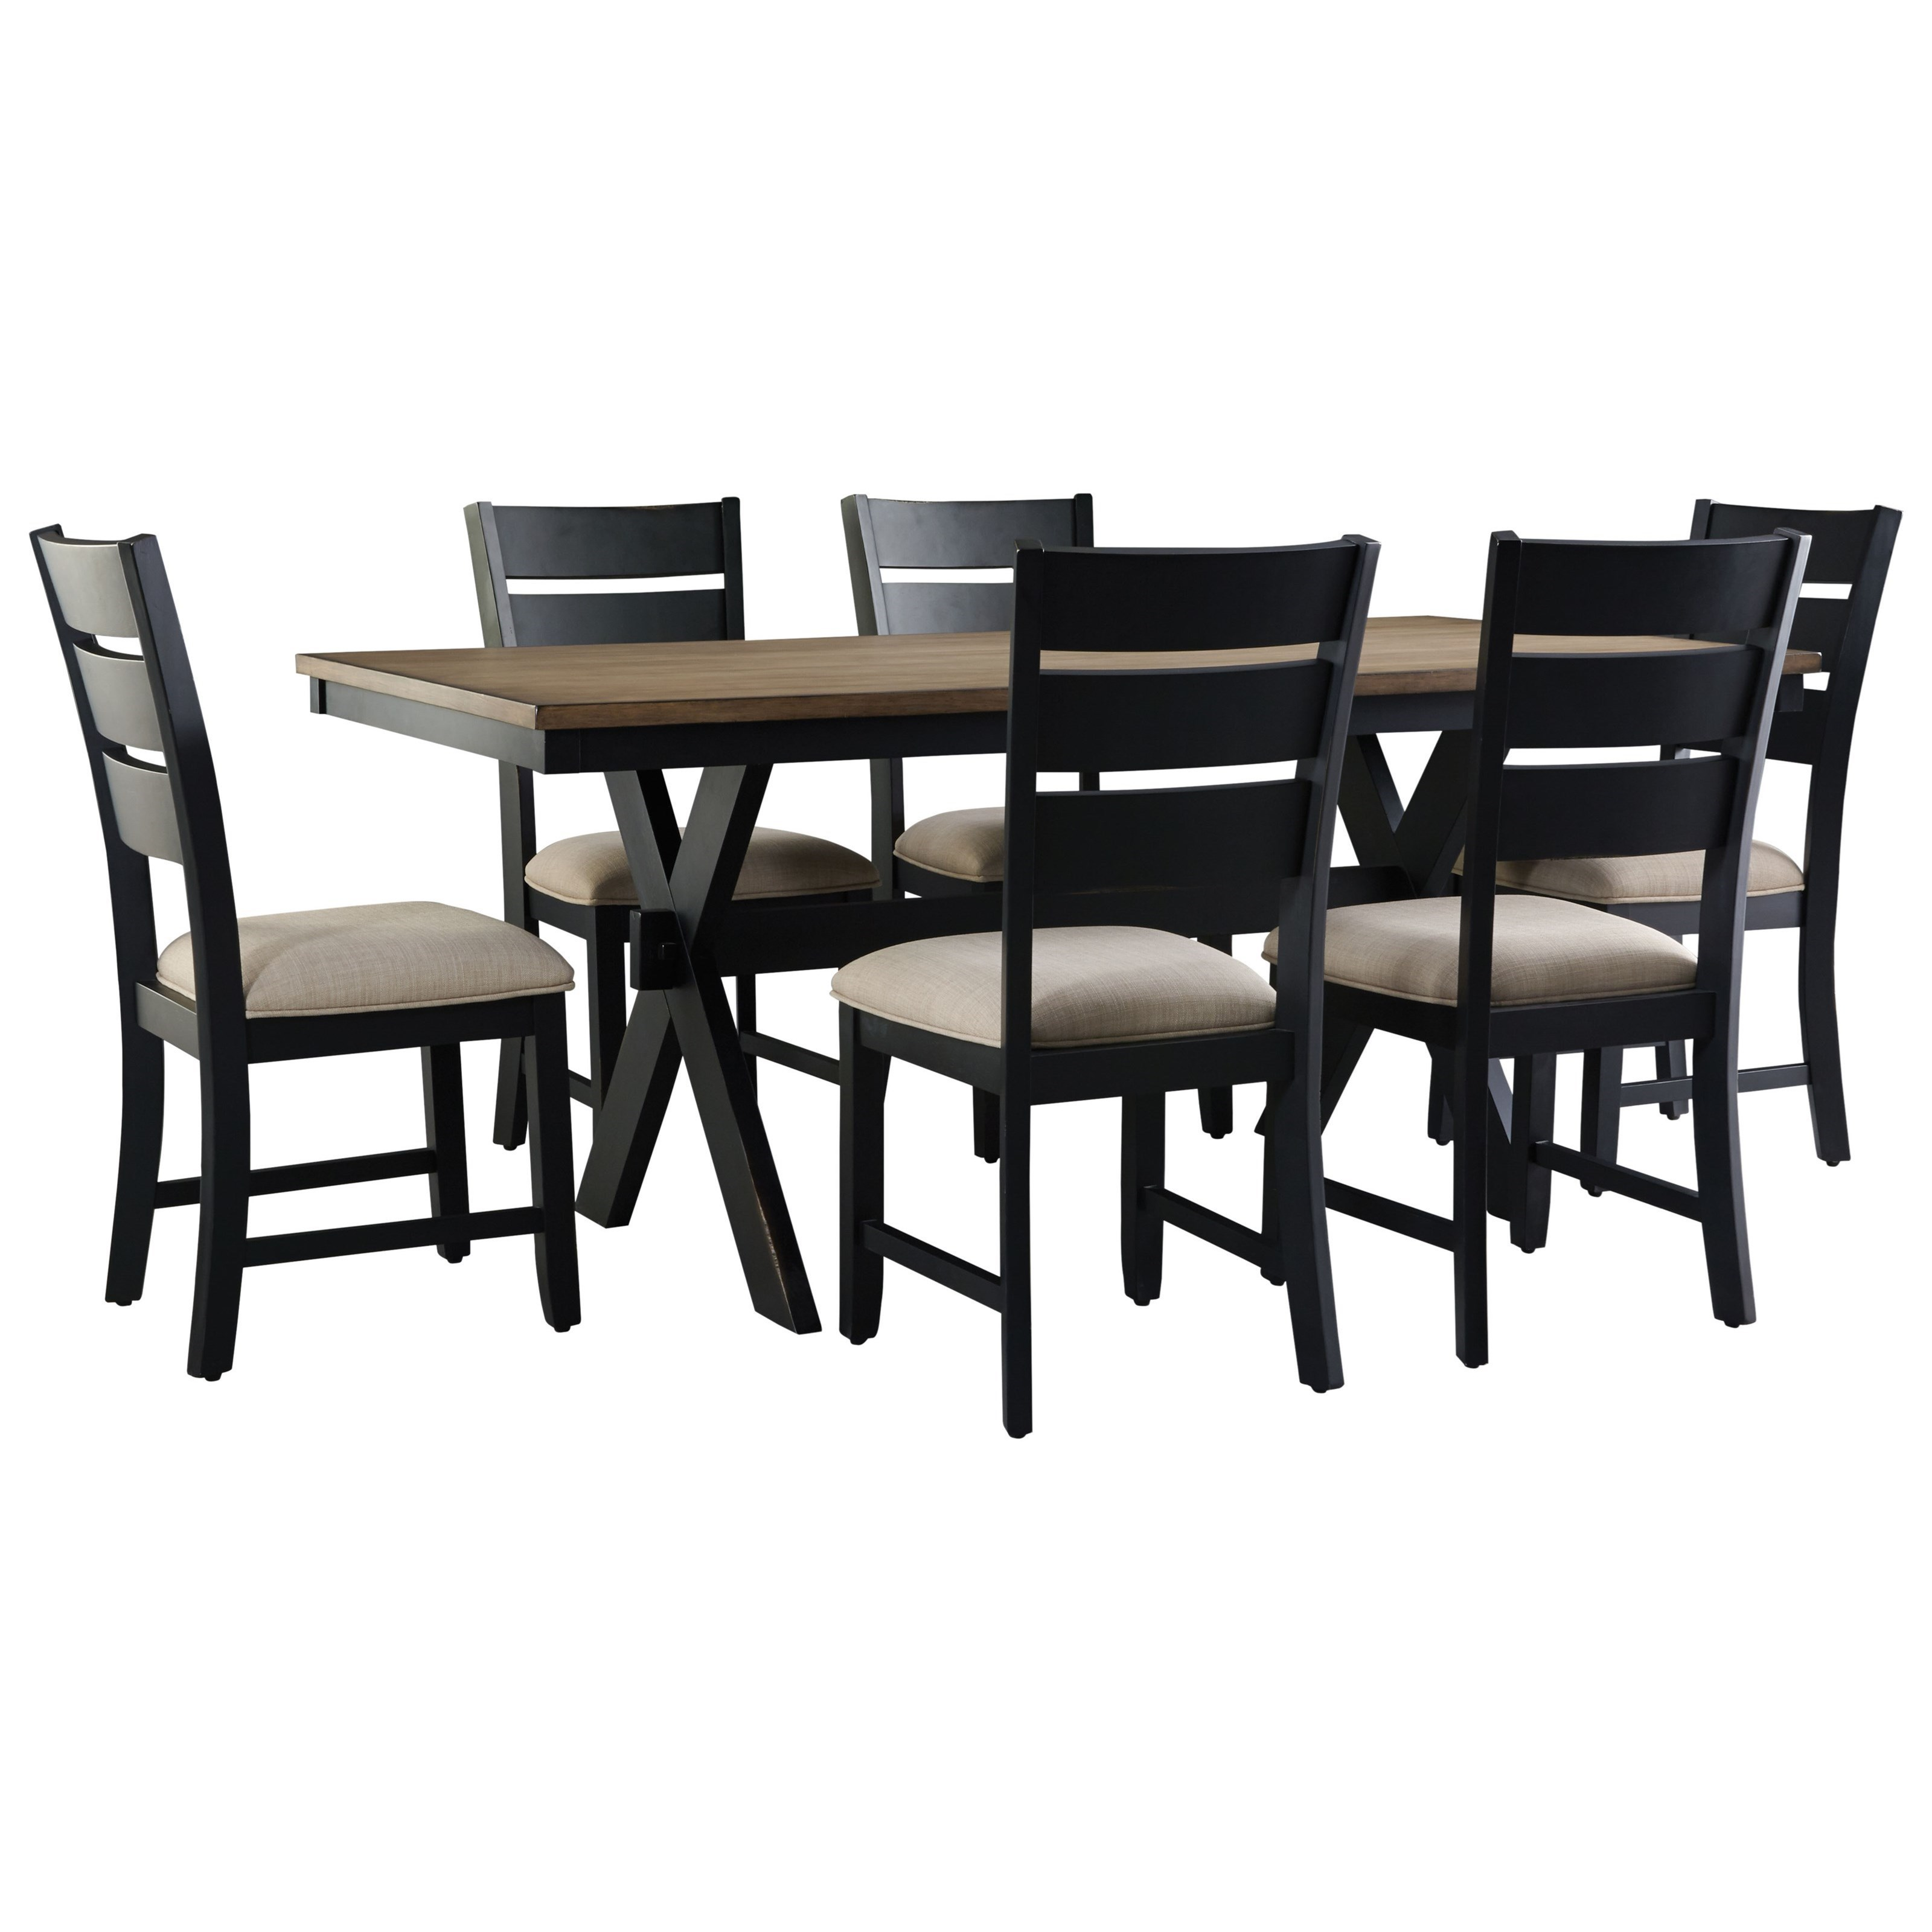 Captivating Standard Furniture Braydon Dining Transitional Table And Chair Set